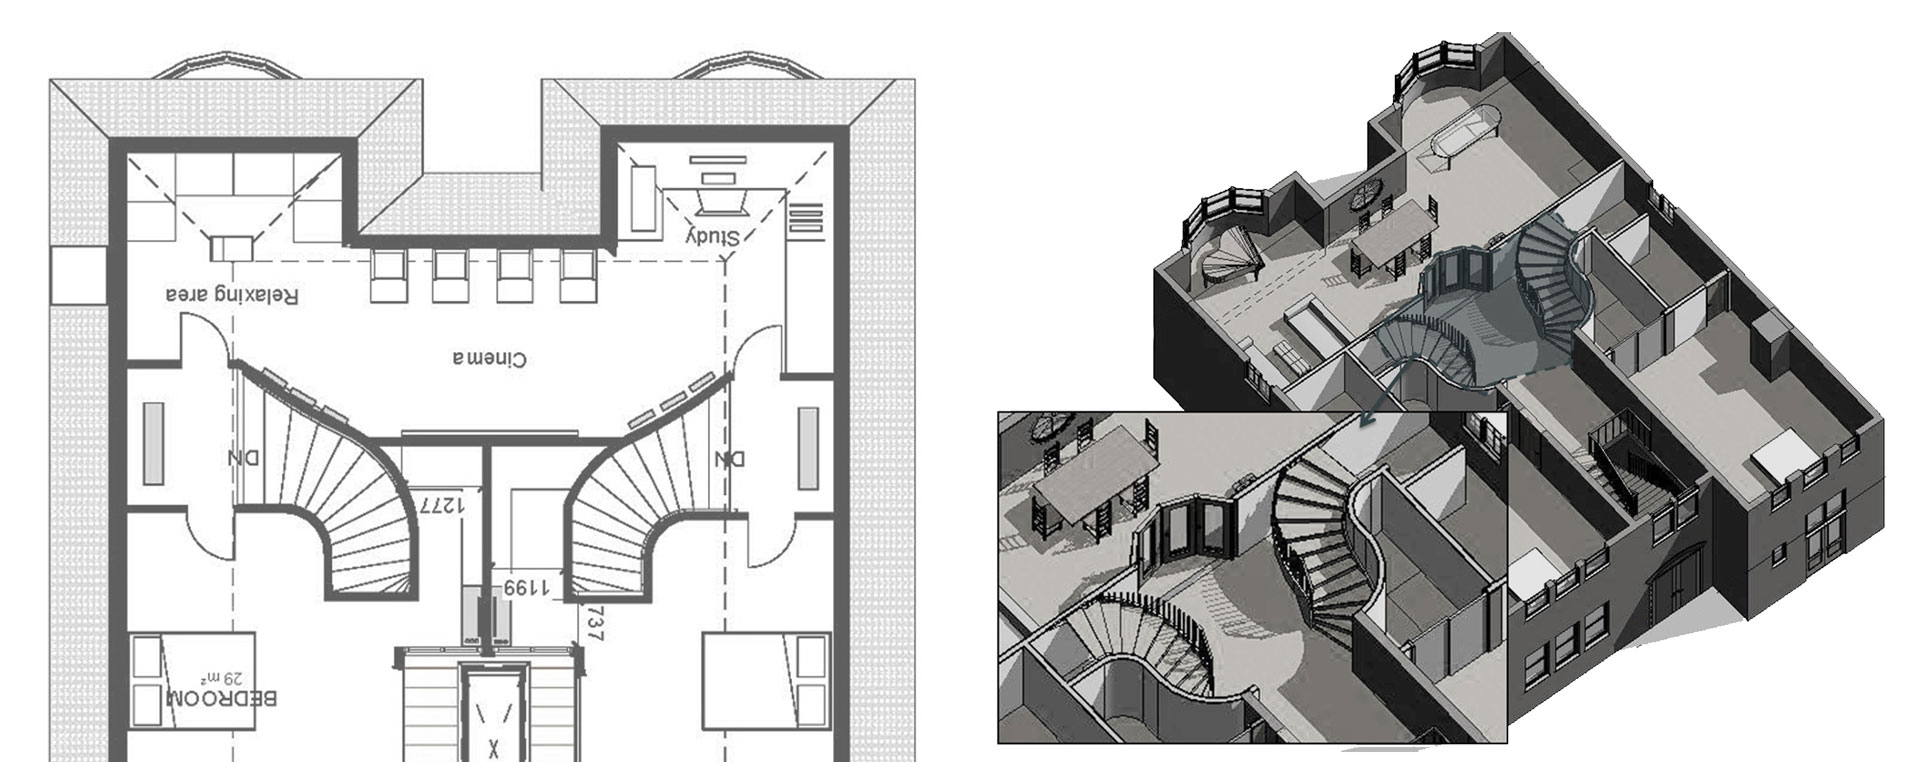 Roof-Conversion-WimbledonMerton-Spiral-Stairs